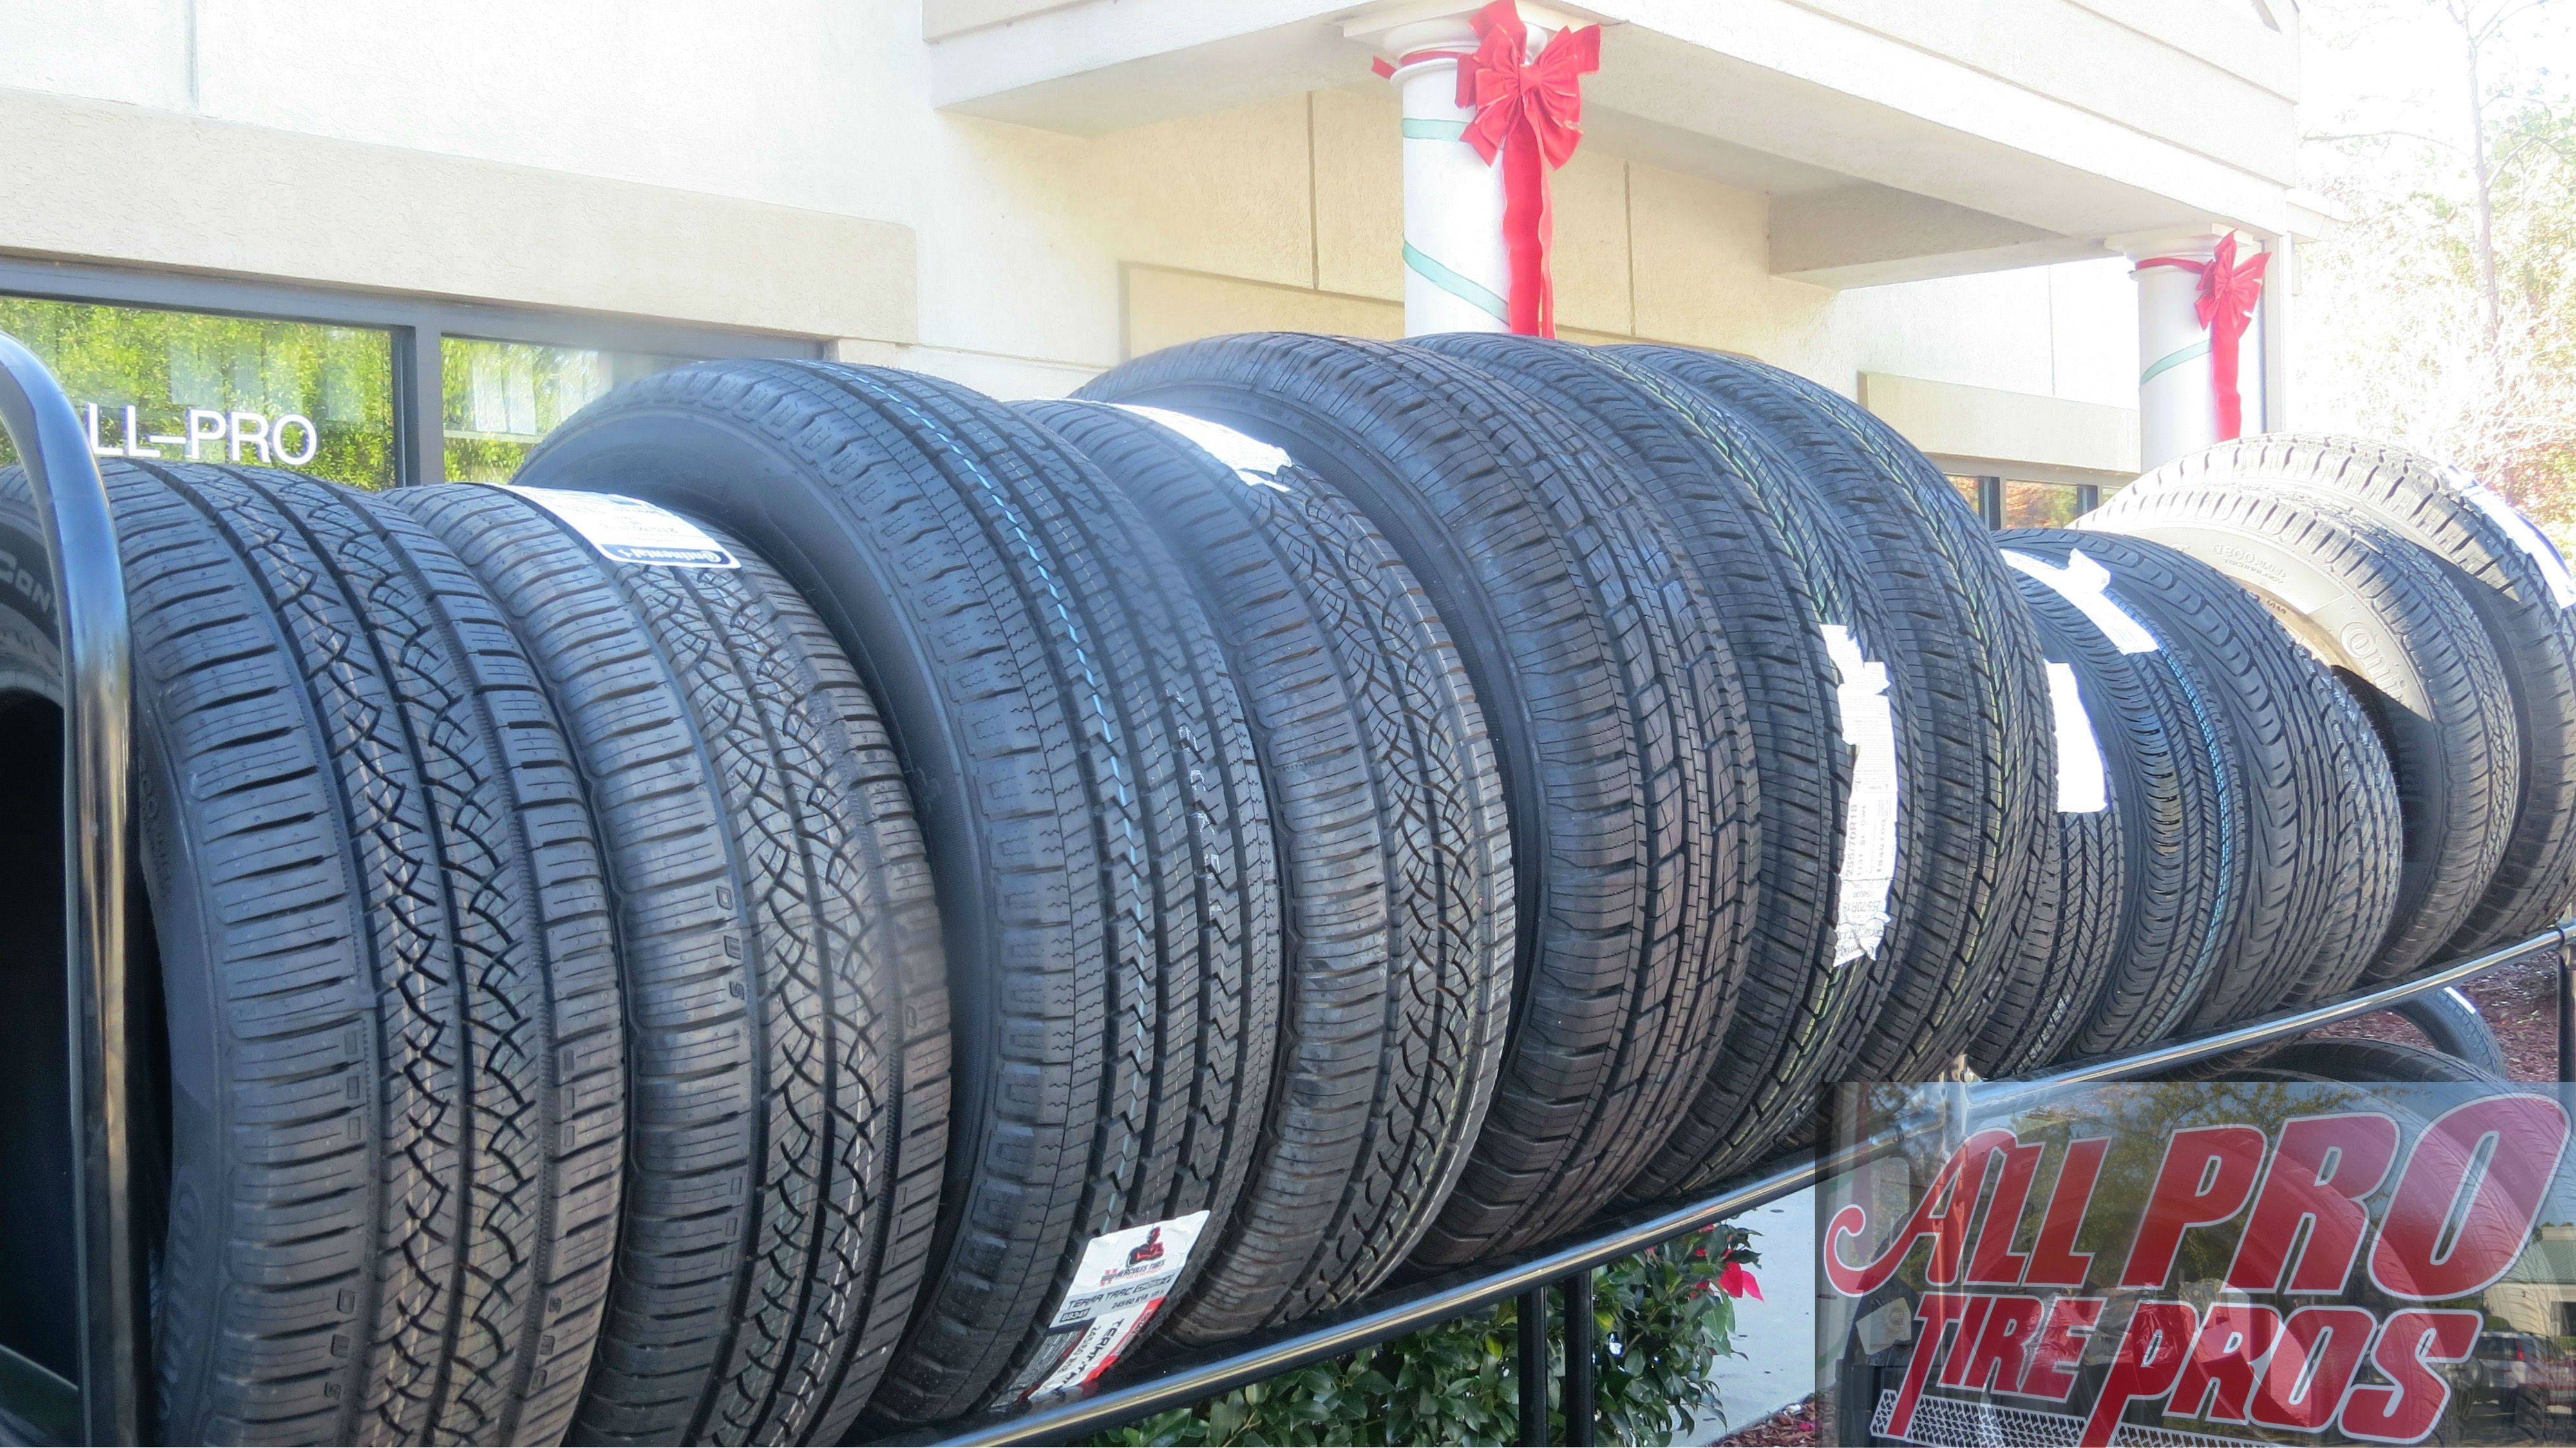 Pin by All Pro Tire Pros on Tire Sales | All pro